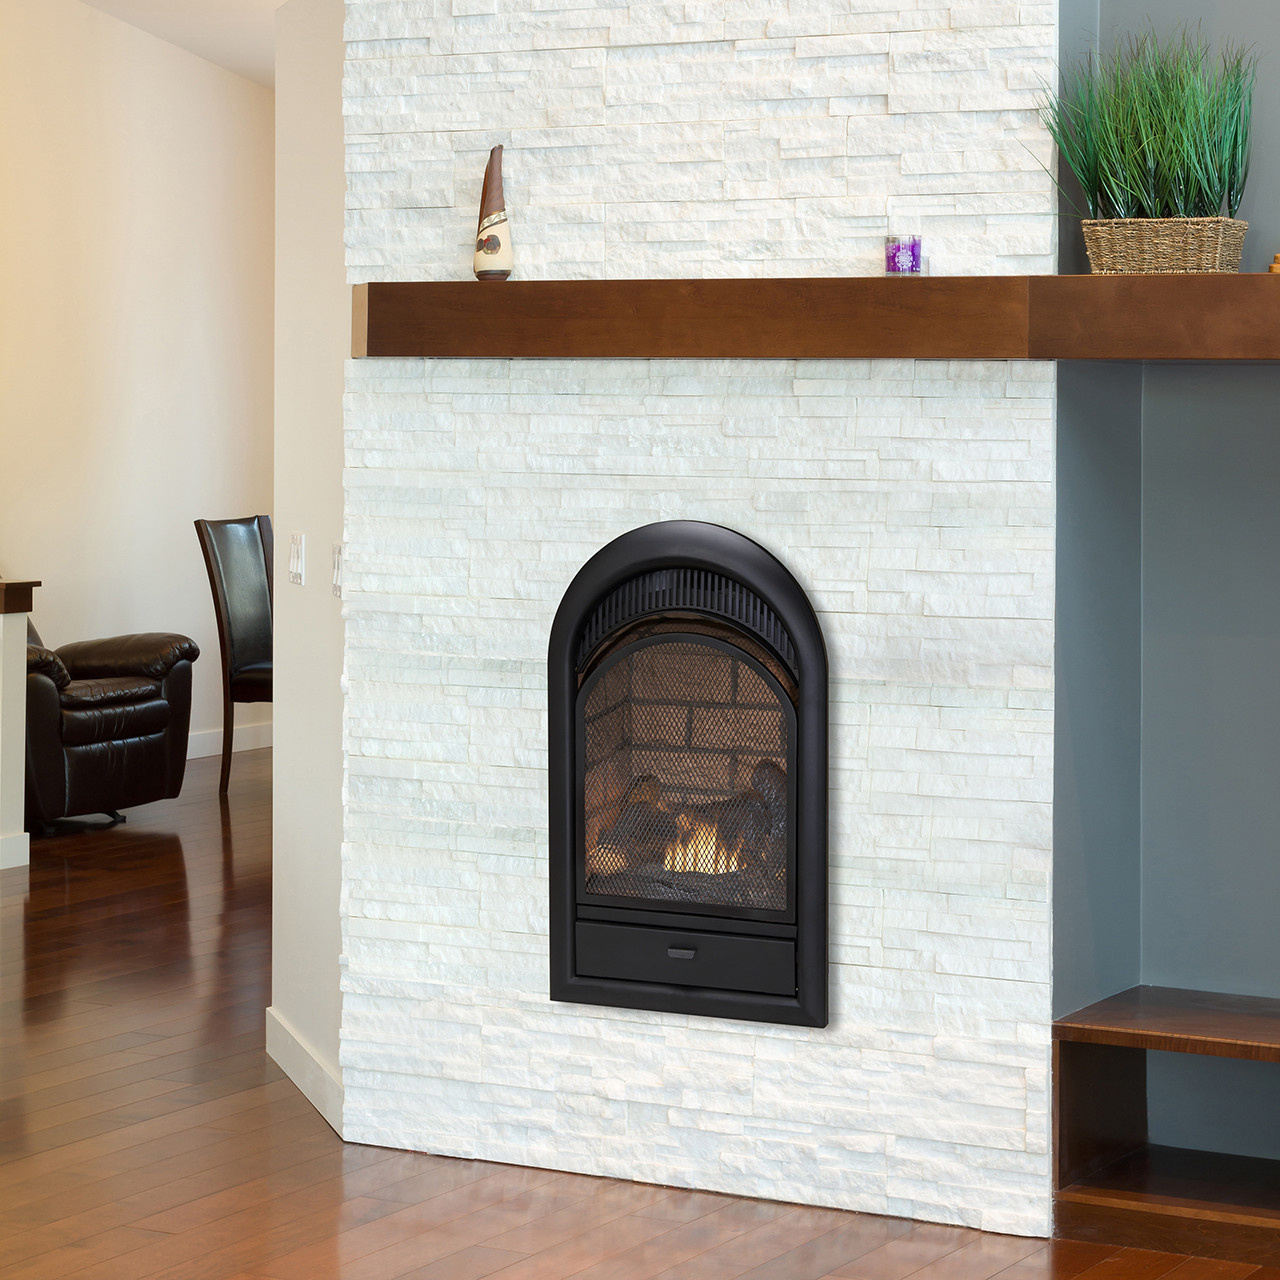 Duluth Forge Dual Fuel Ventless Fireplace Insert - 32,000 BTU ...